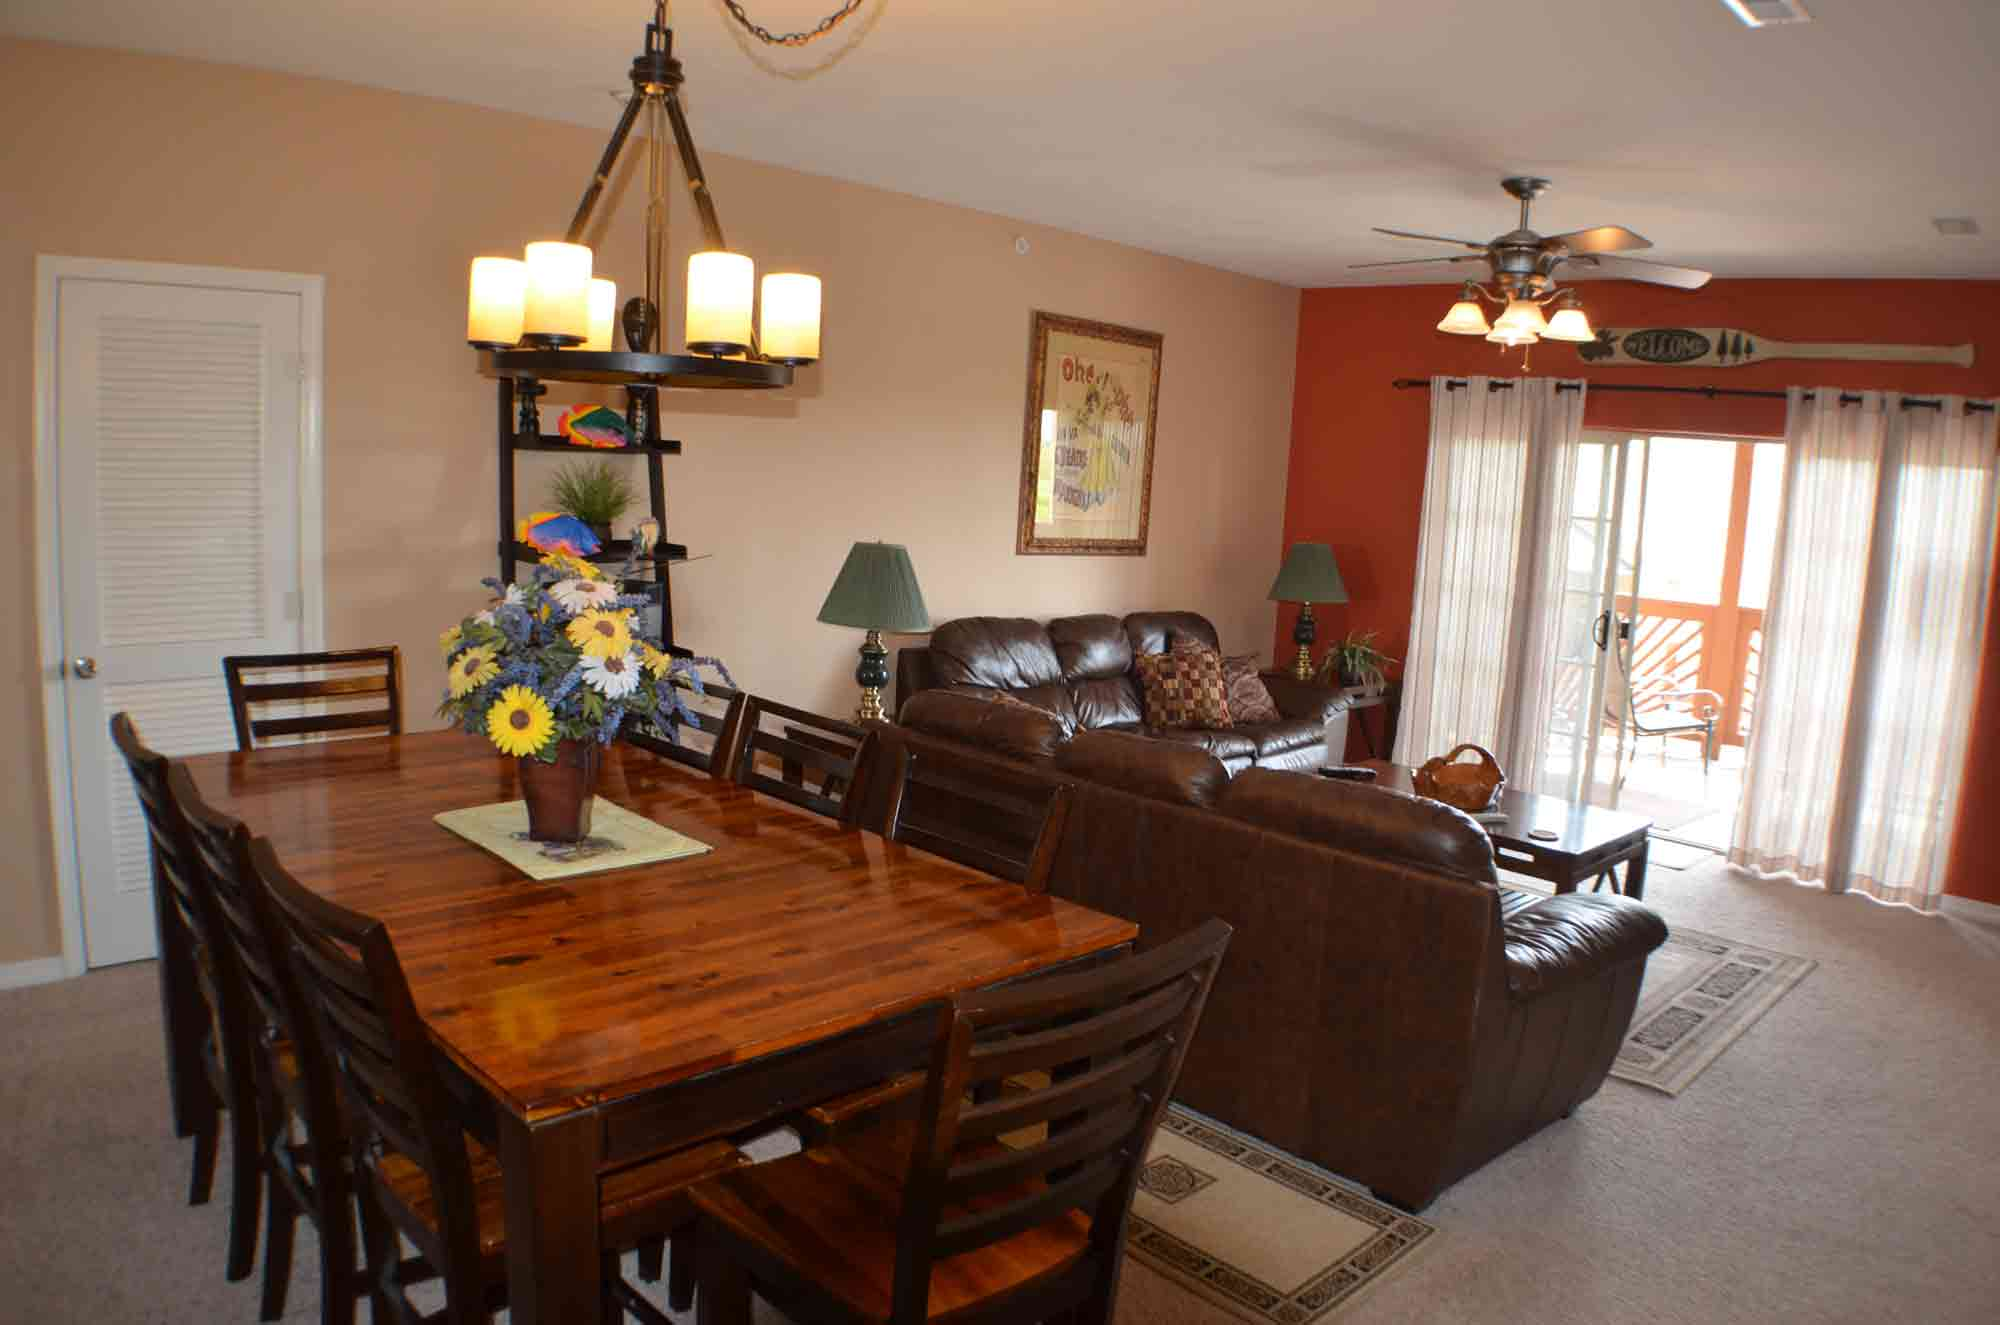 There is an 8 person dining table along with 2 hideabed couches in the living room of this condo.